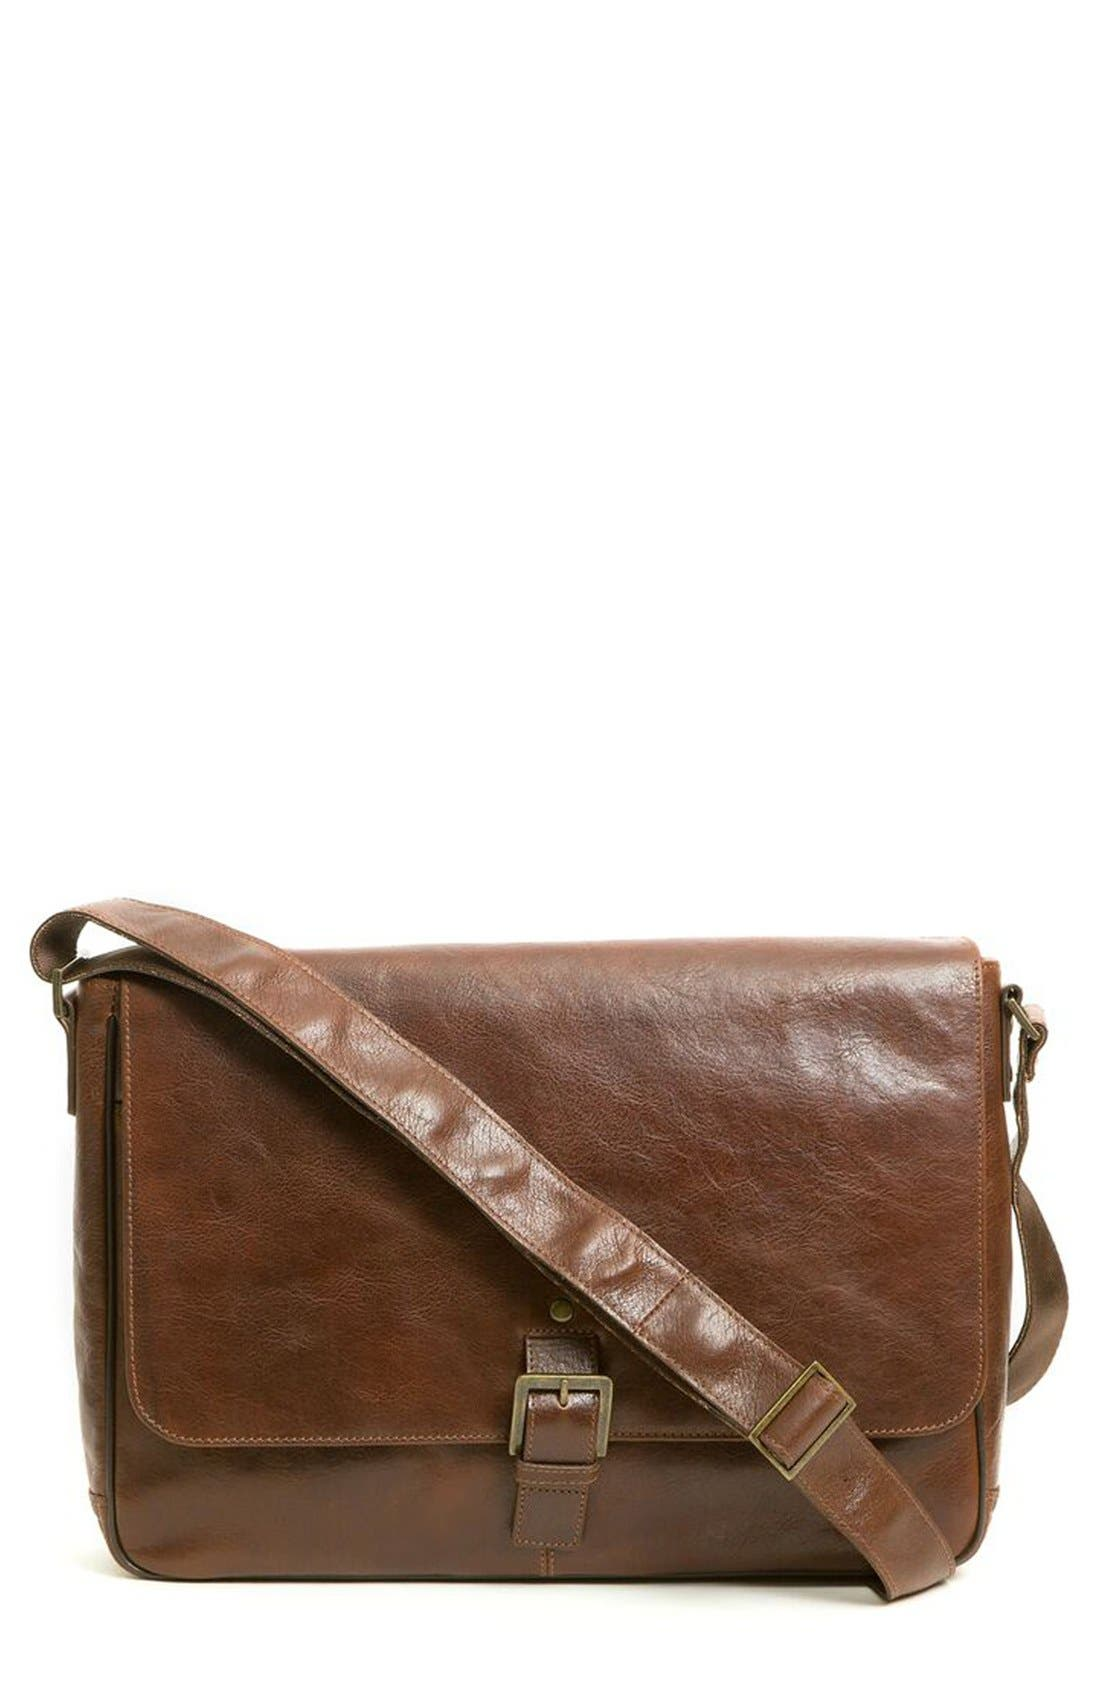 'Becker' Leather Messenger Bag,                         Main,                         color, WHISKEY